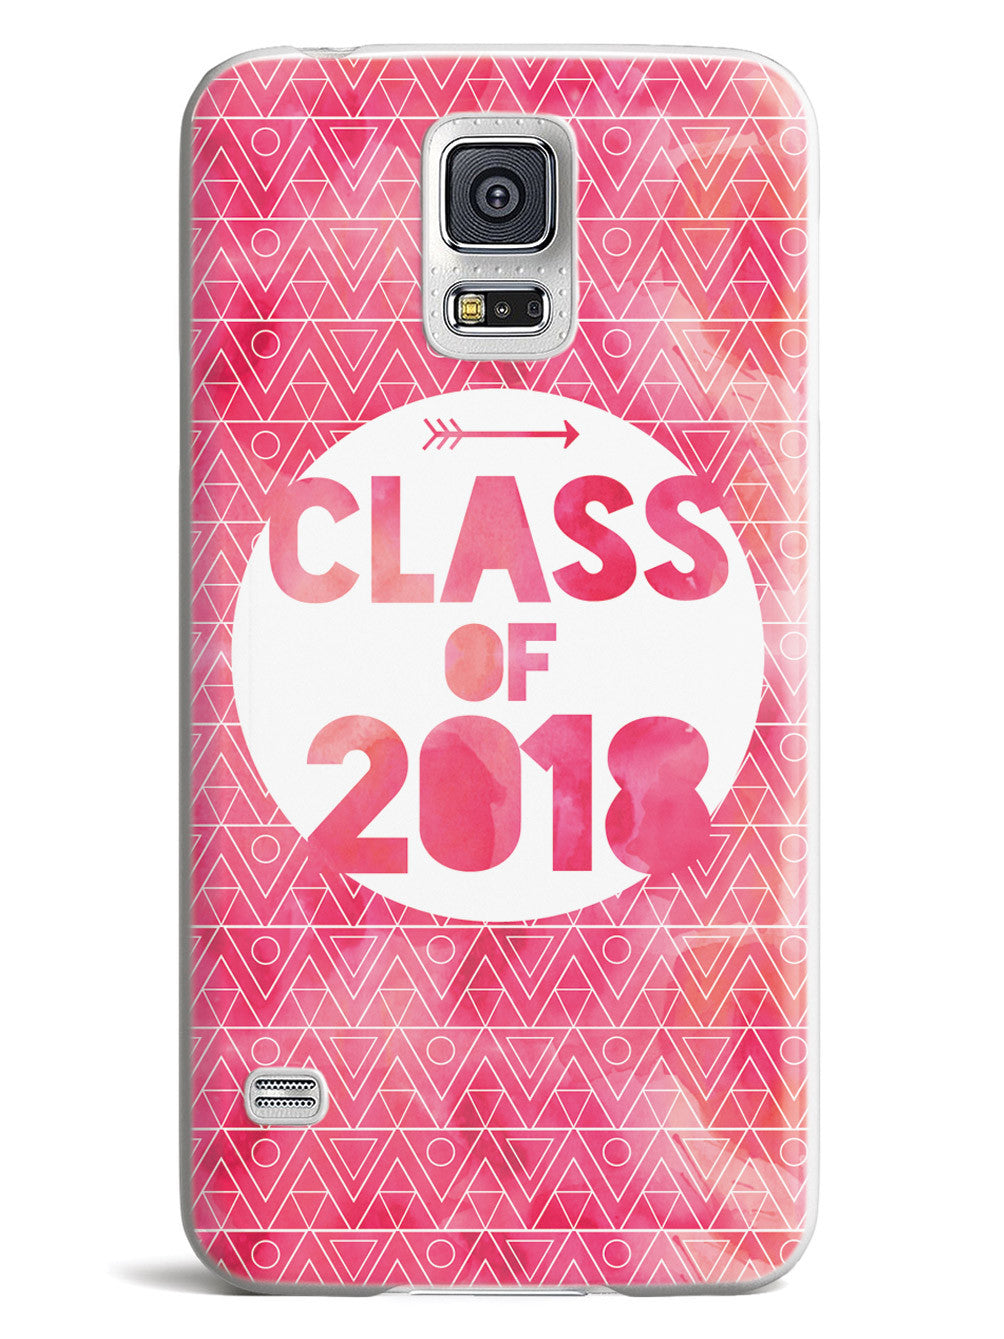 Class of 2018 - Pink Watercolor Case